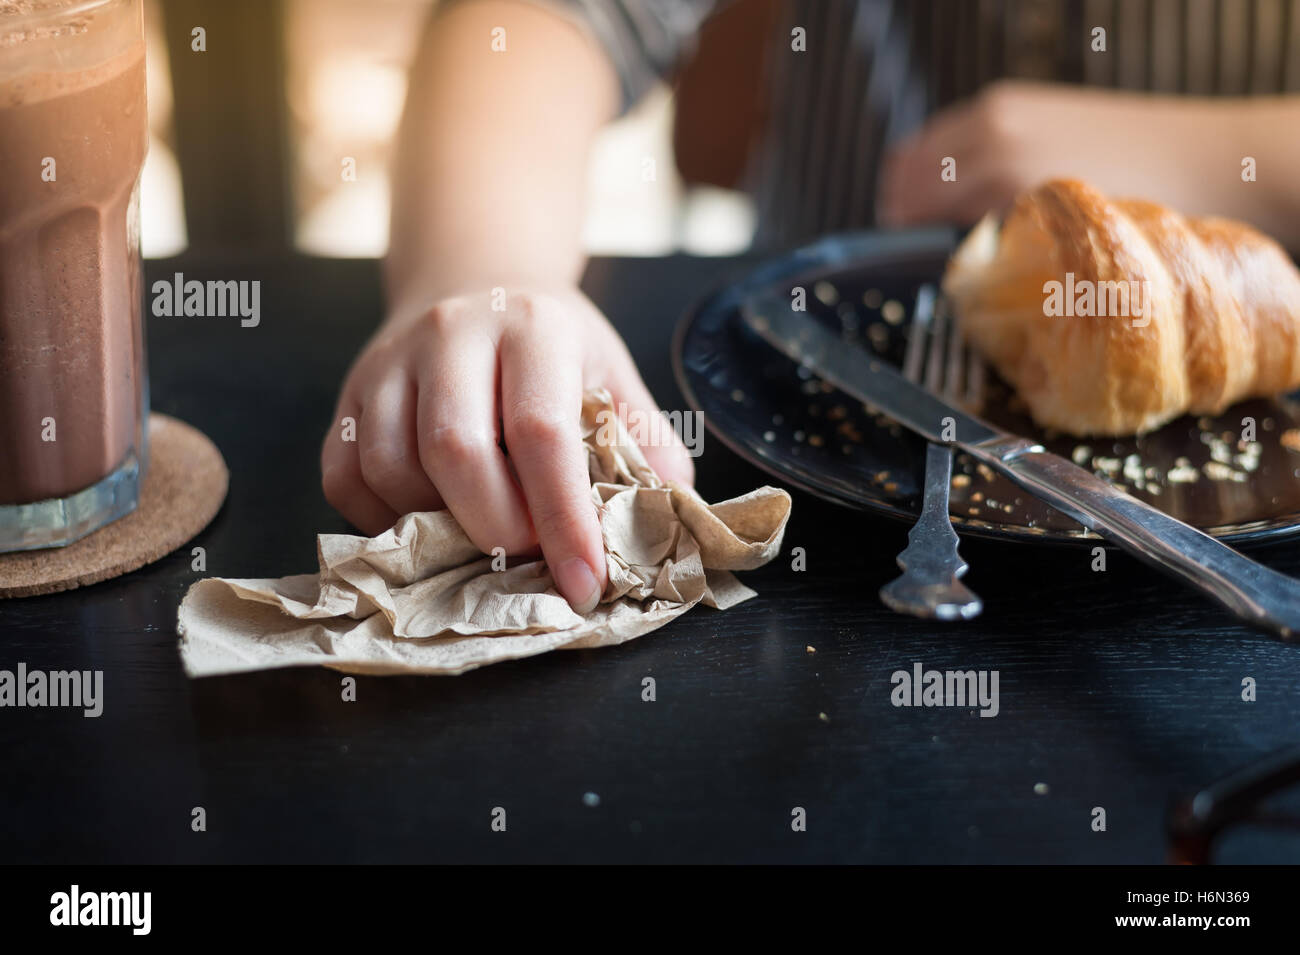 Woman right hand wipe on brown paper napkin on wood table in cafe. - Stock Image